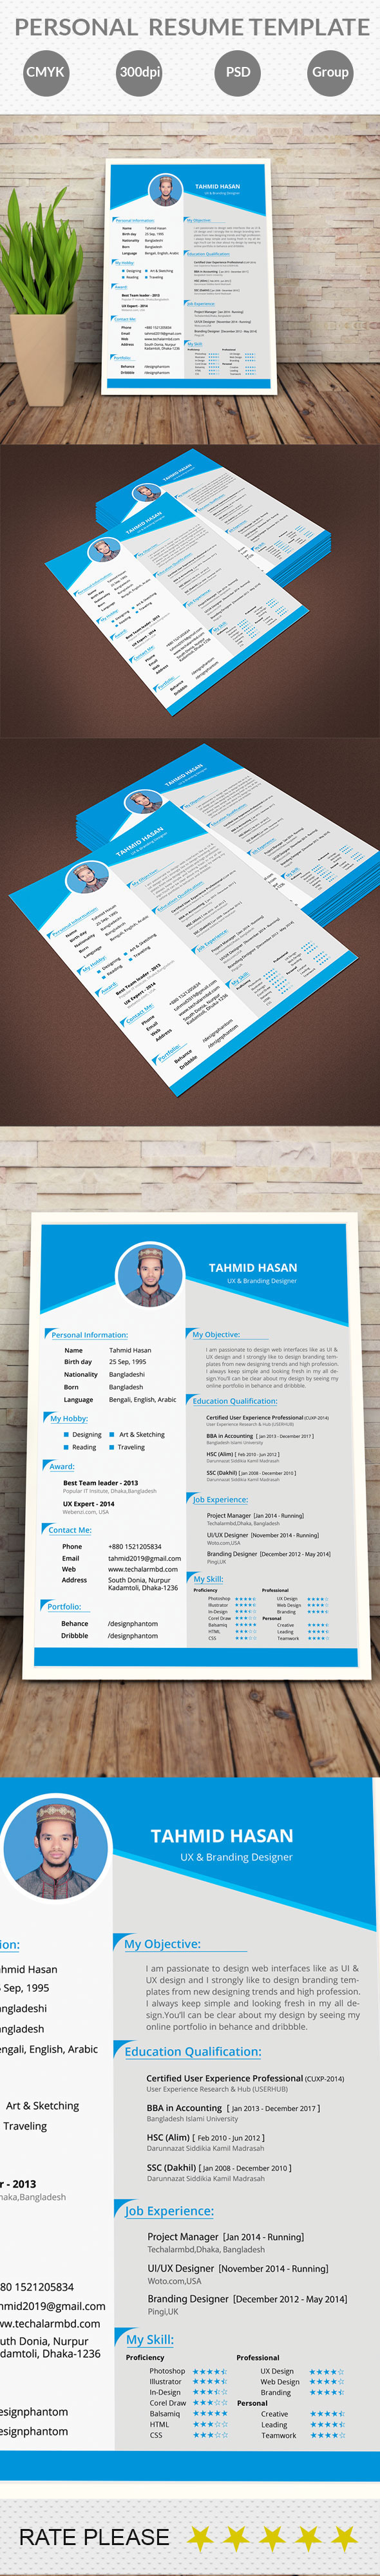 Personal Resume Template Free Download On Behance